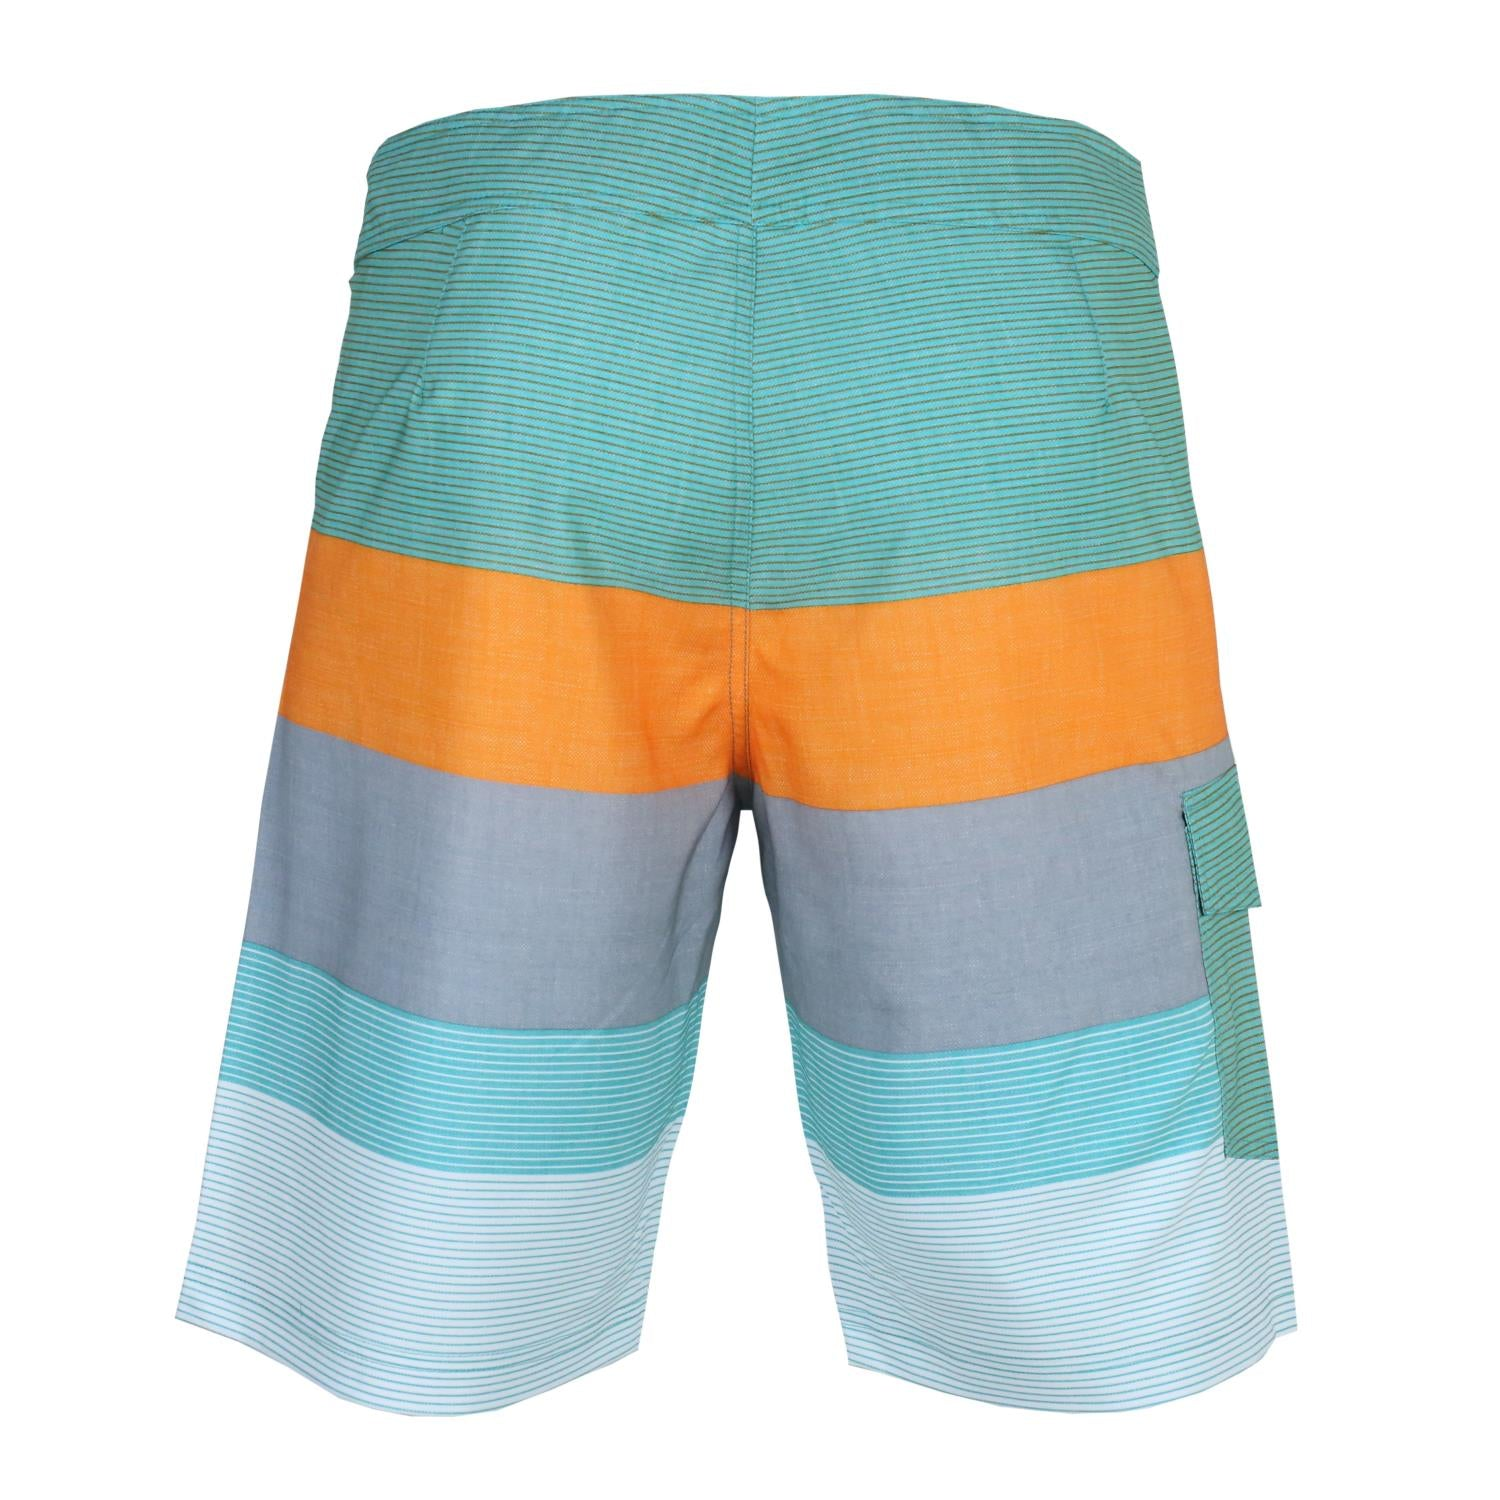 Men's-Beach-Vacation-Swimwear--Shorts